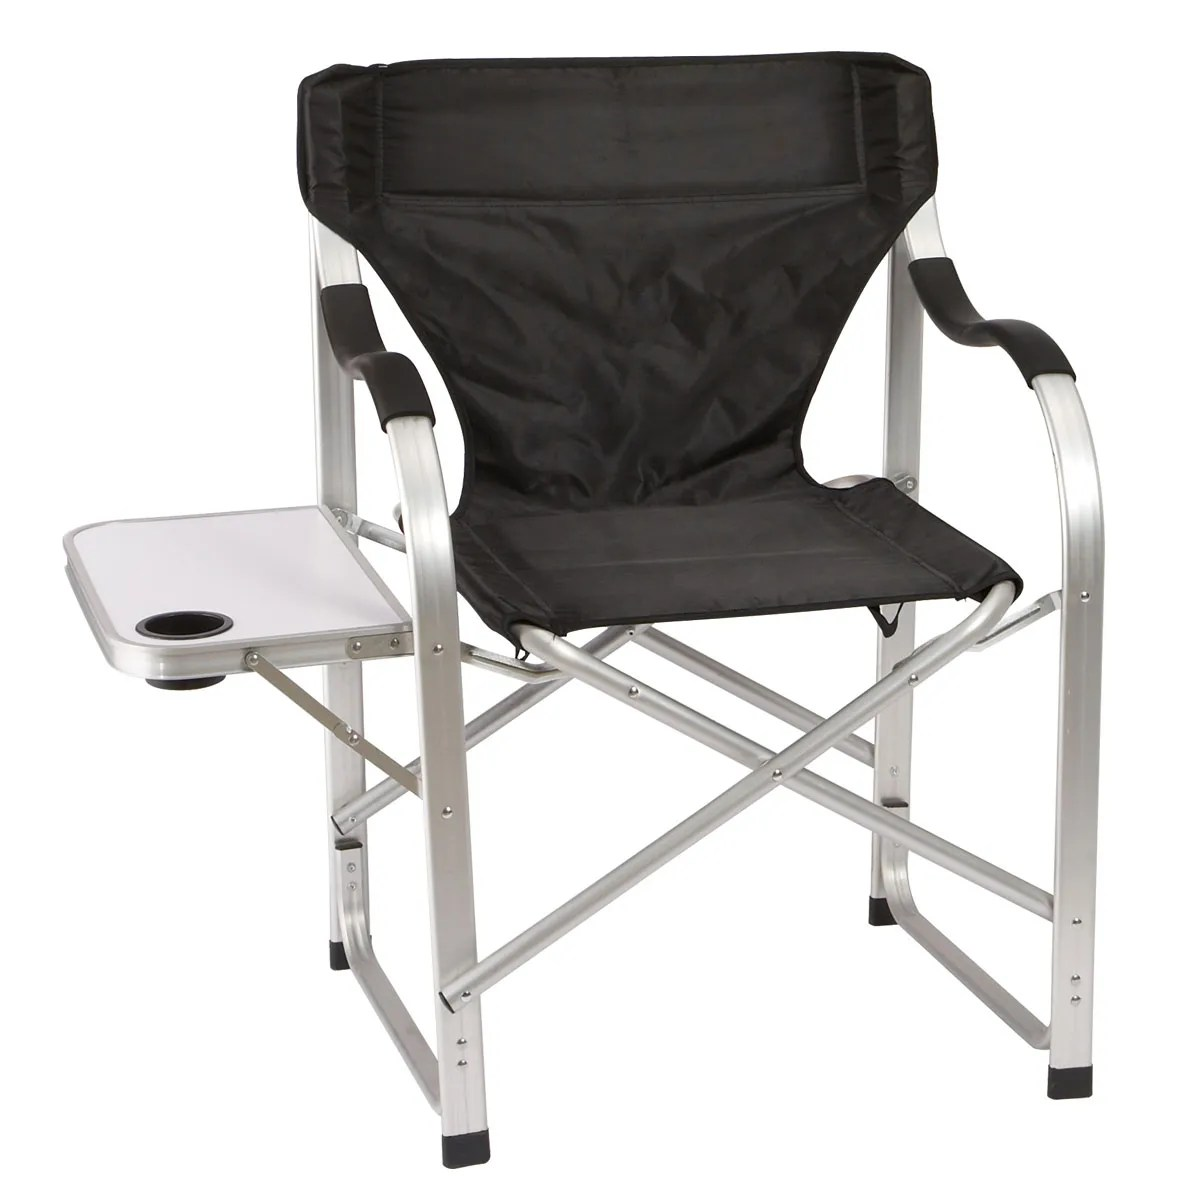 Heavy Duty Outdoor Folding Chairs Heavy Duty Collapsible Lawn Chair Black From Sportys